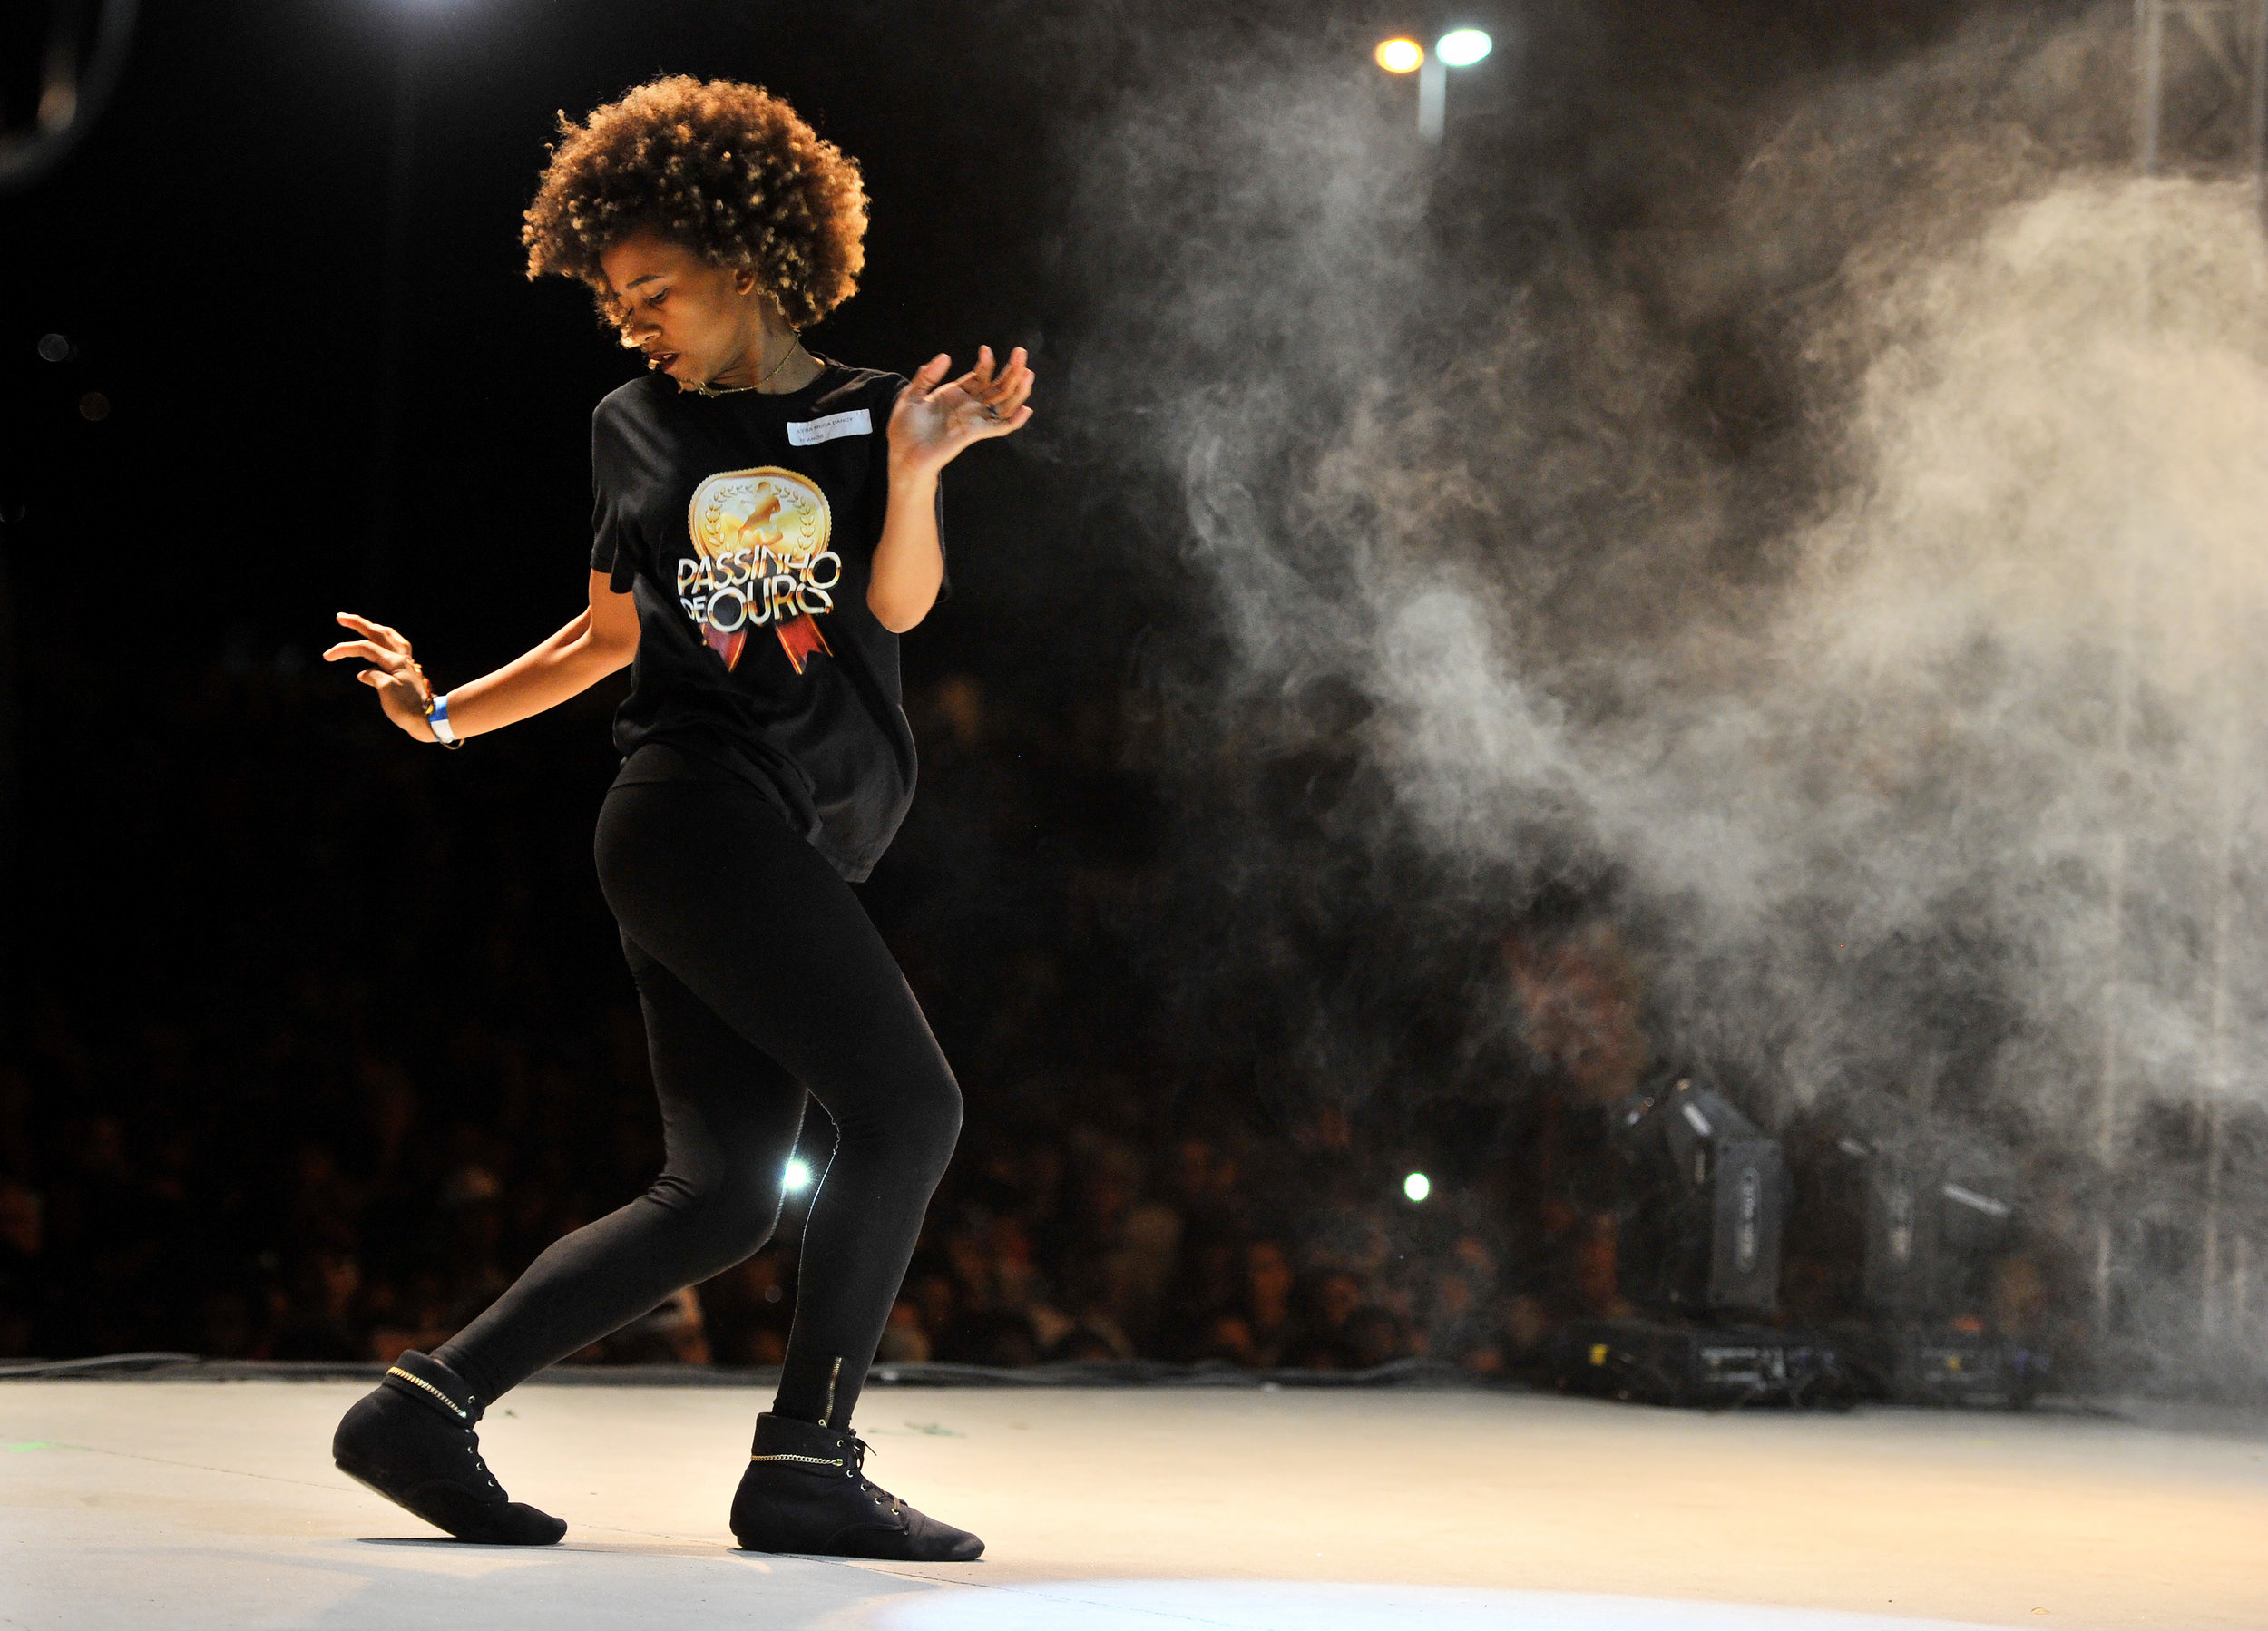 A woman dances the Passinho at Parque Madureira in Rio de Janeiro, Brazil, on August 13, 2016. This type of dance is similar to hip-hop and twerking in the United States.(Sarah Stier | Ball State at the Games)